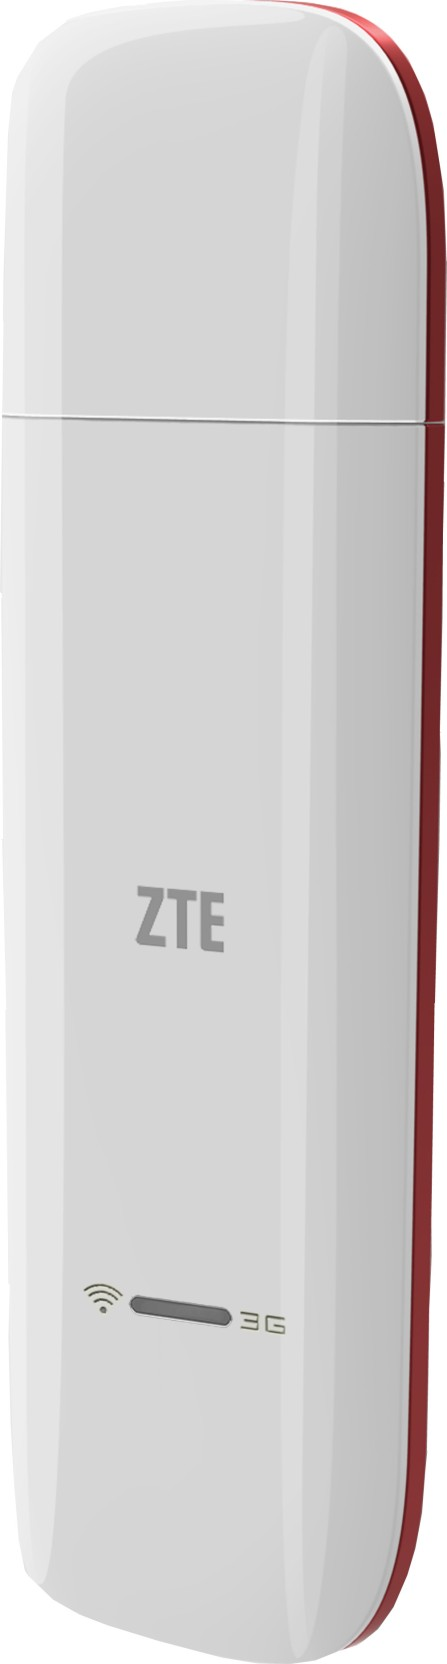 ZTE AW3632 14 4 Mbps (3G WiFi) Data Card